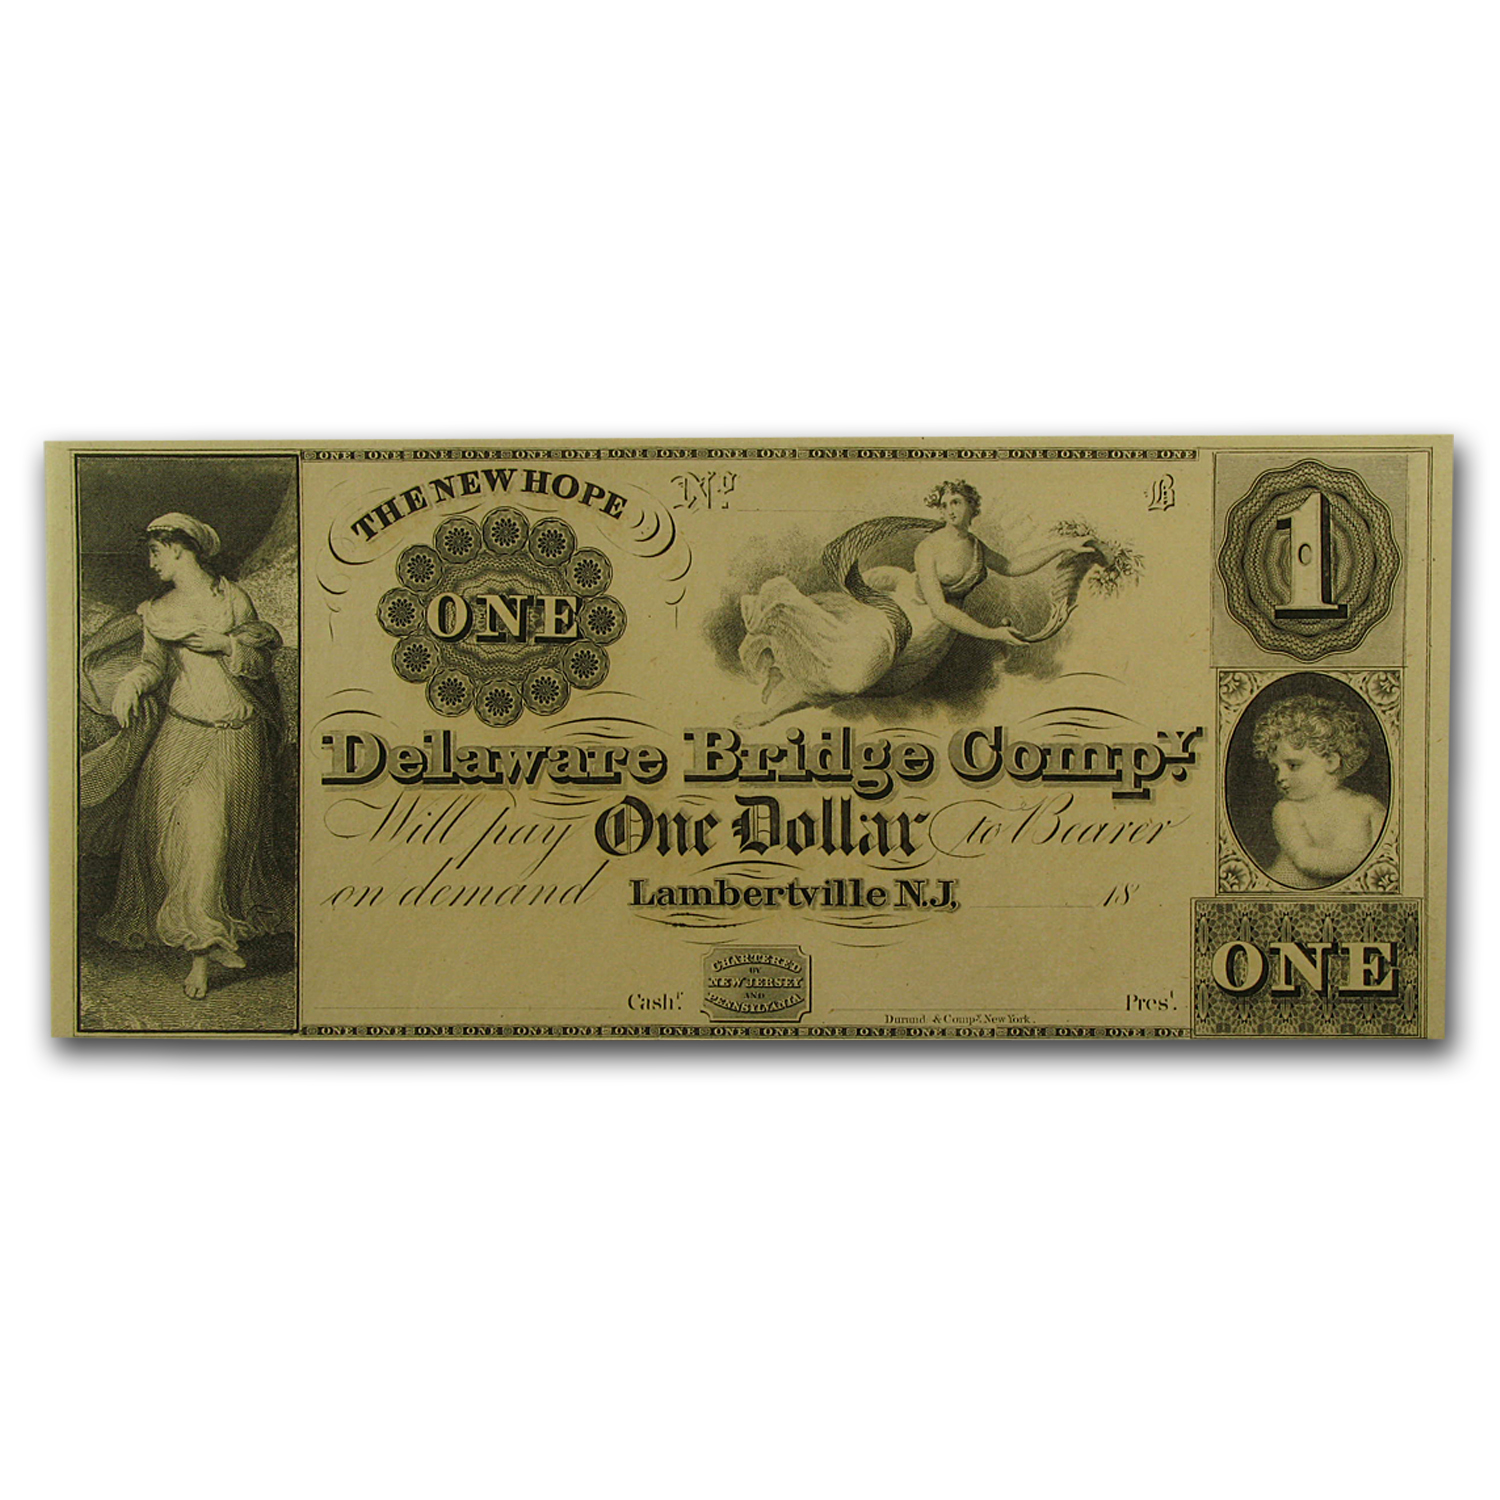 18__ Delaware Bridge Co of Lambertville, New Jersey $1 CU